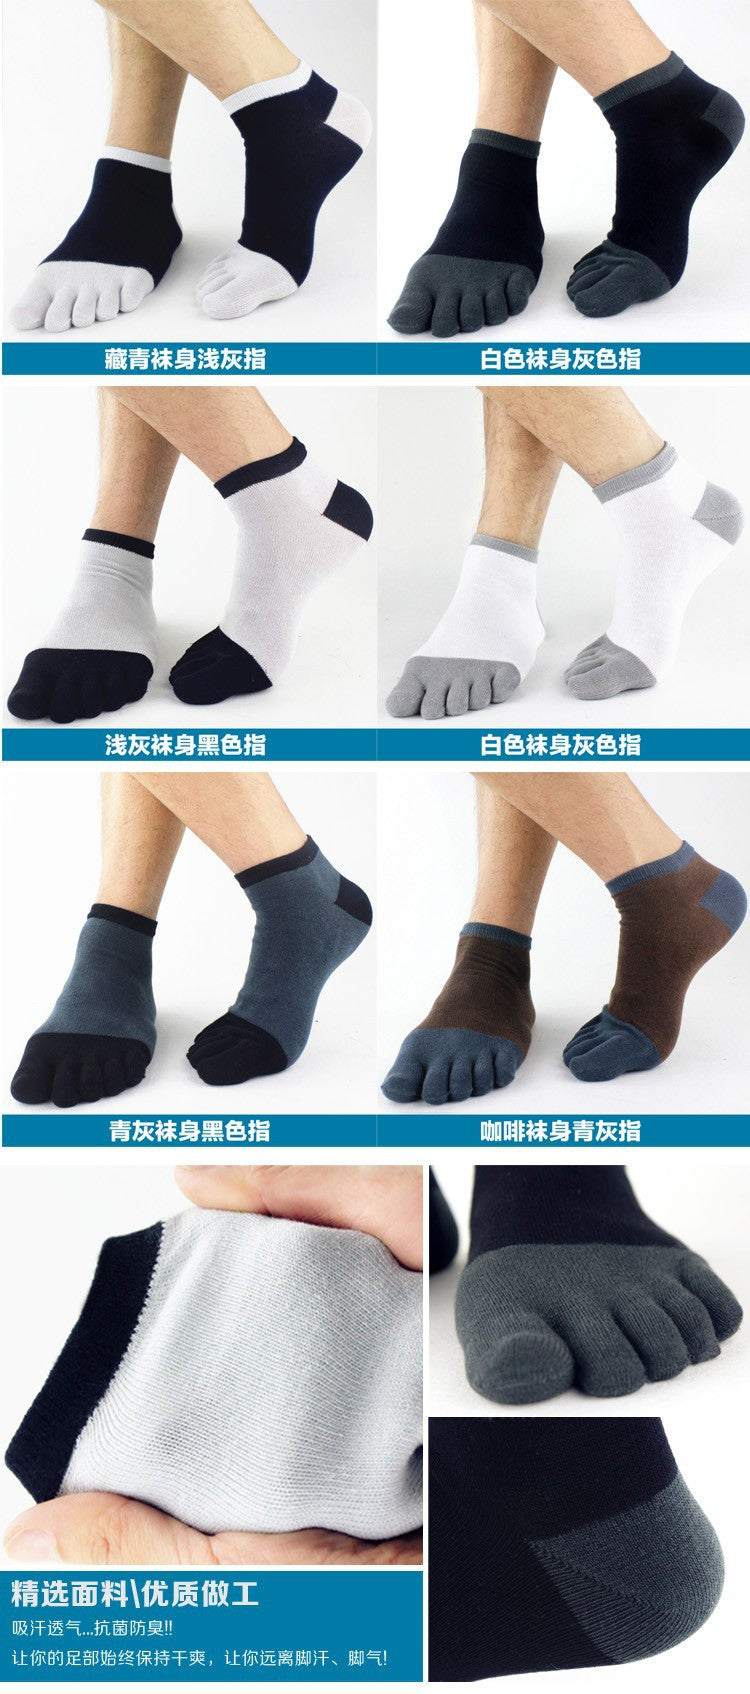 Wiggle Socks 2 Pairs/Lot New Unisex Socks Cotton Meias Sports Five Finger Socks Casual Toe Socks Breathable Calcetines Ankle Socks 21 Colors - Cerkos  - 16